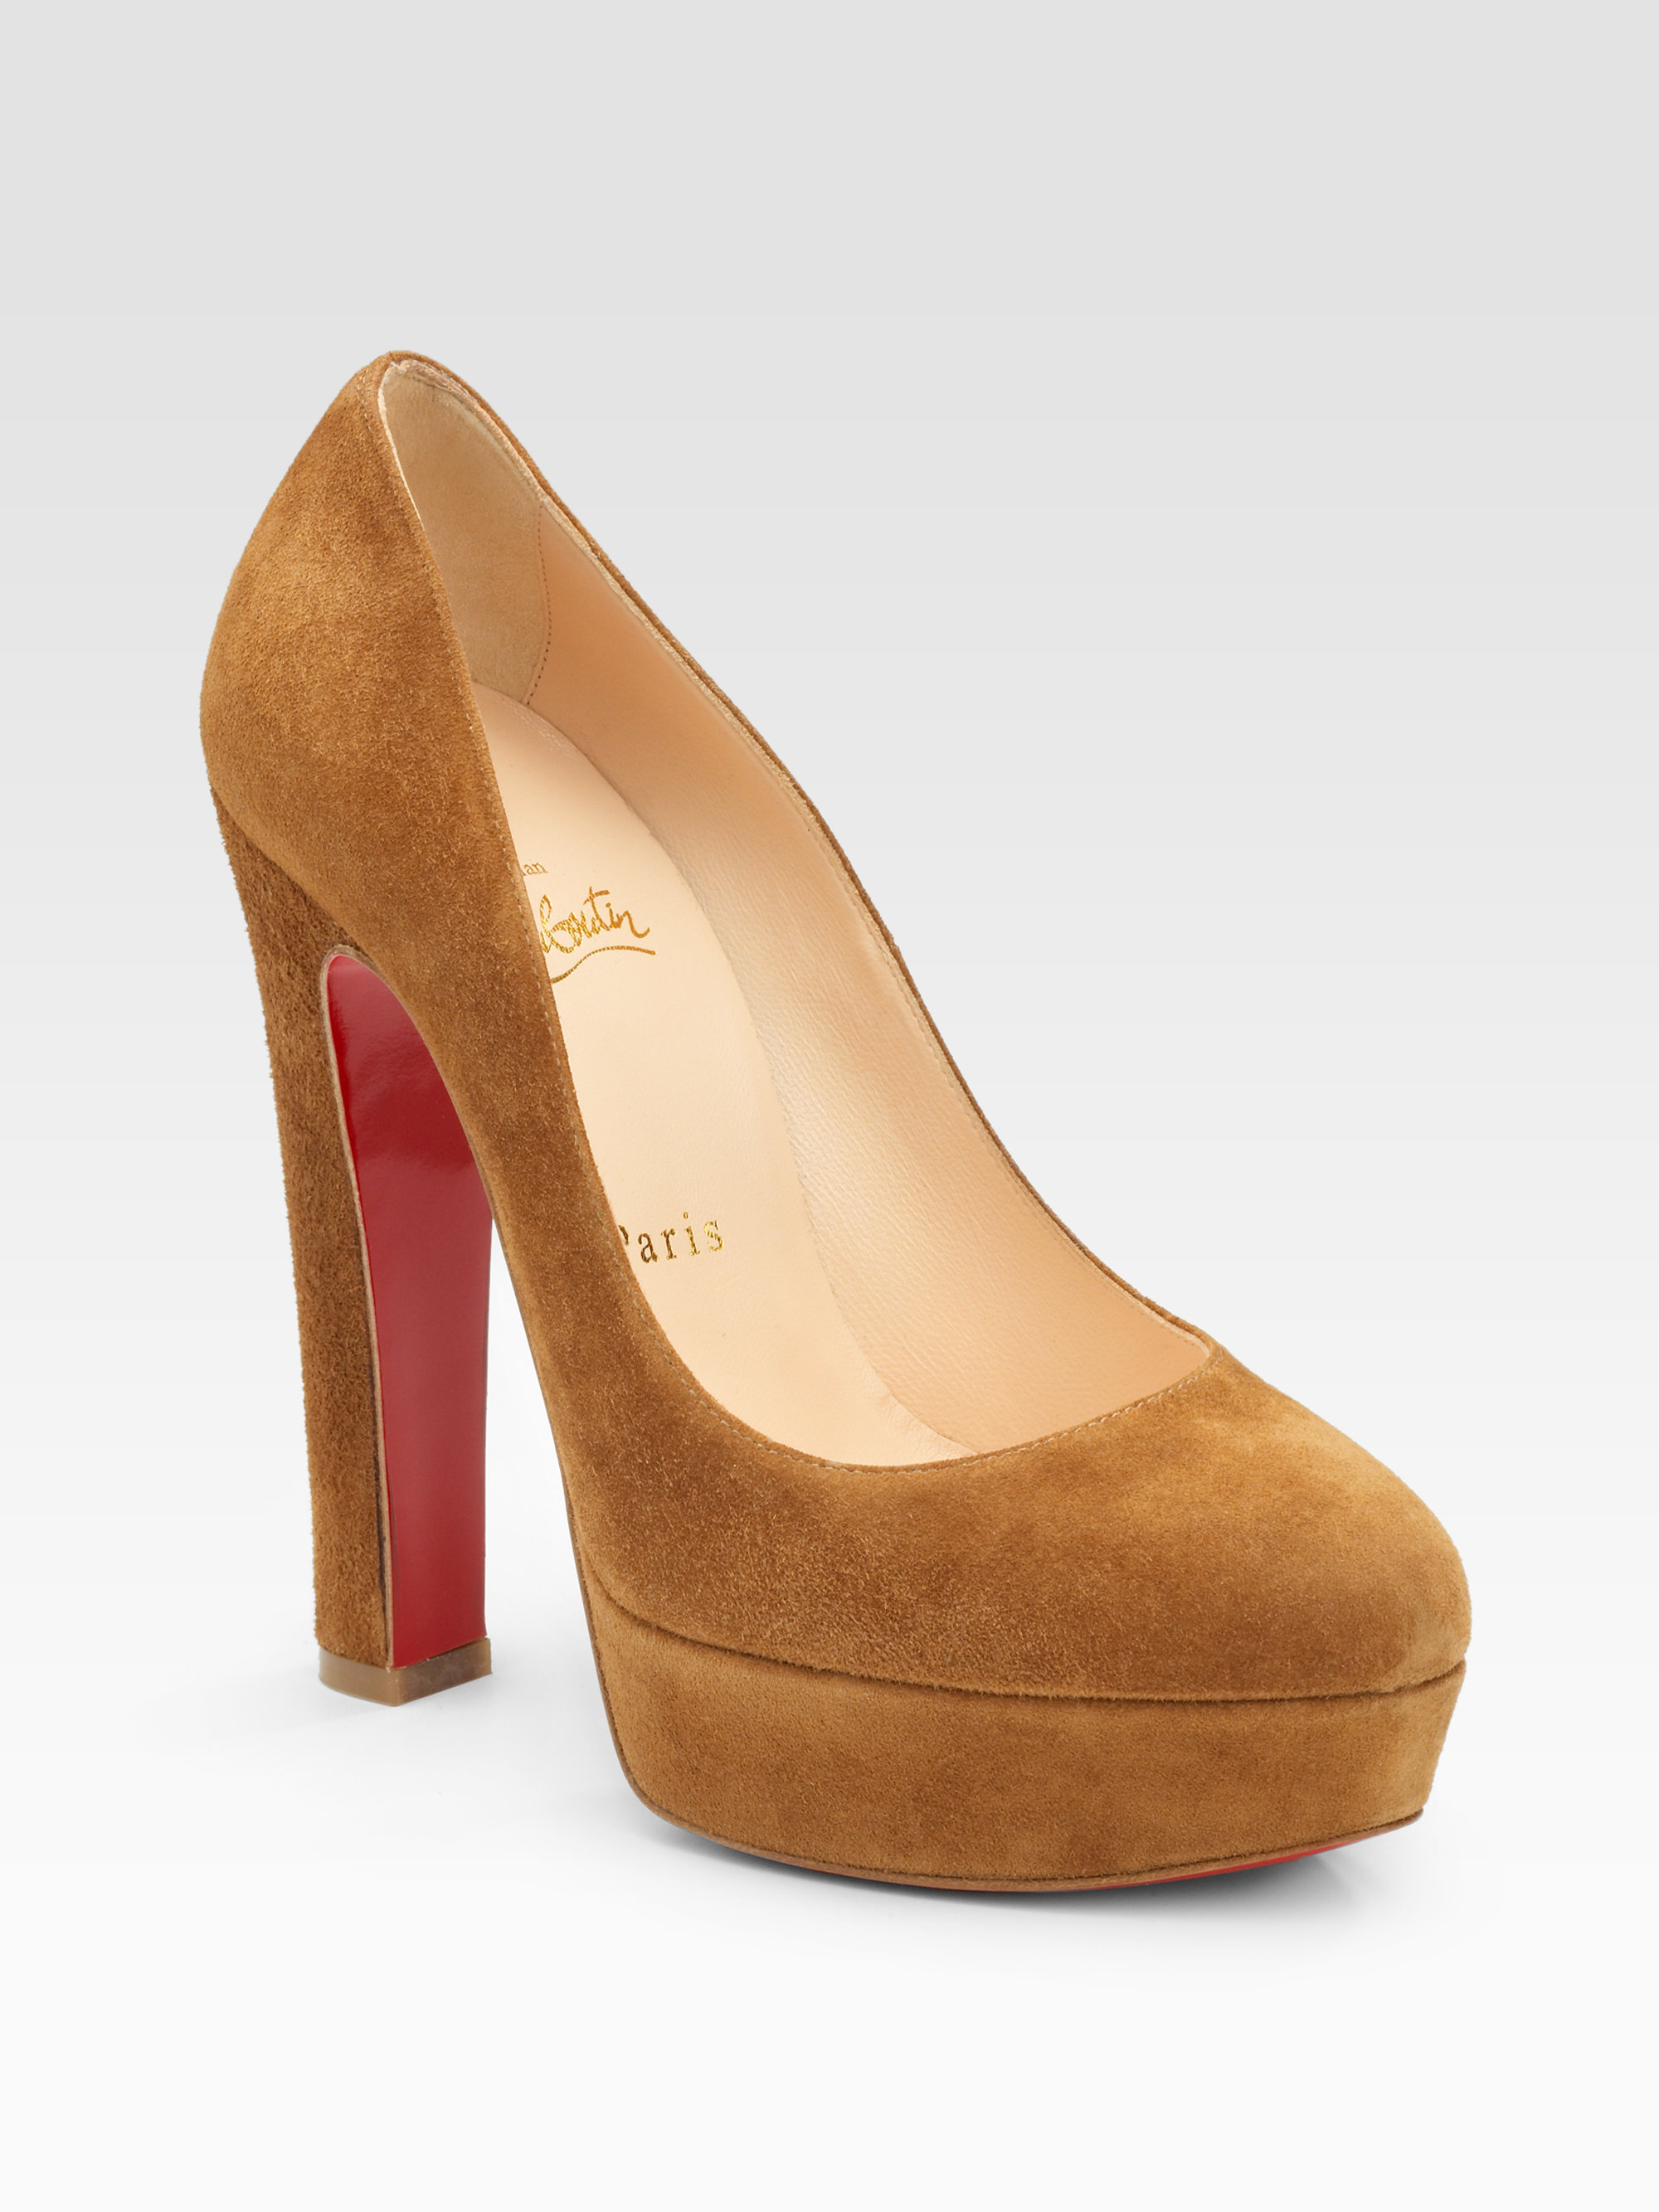 christian louboutin round-toe platform pumps Orange suede ...